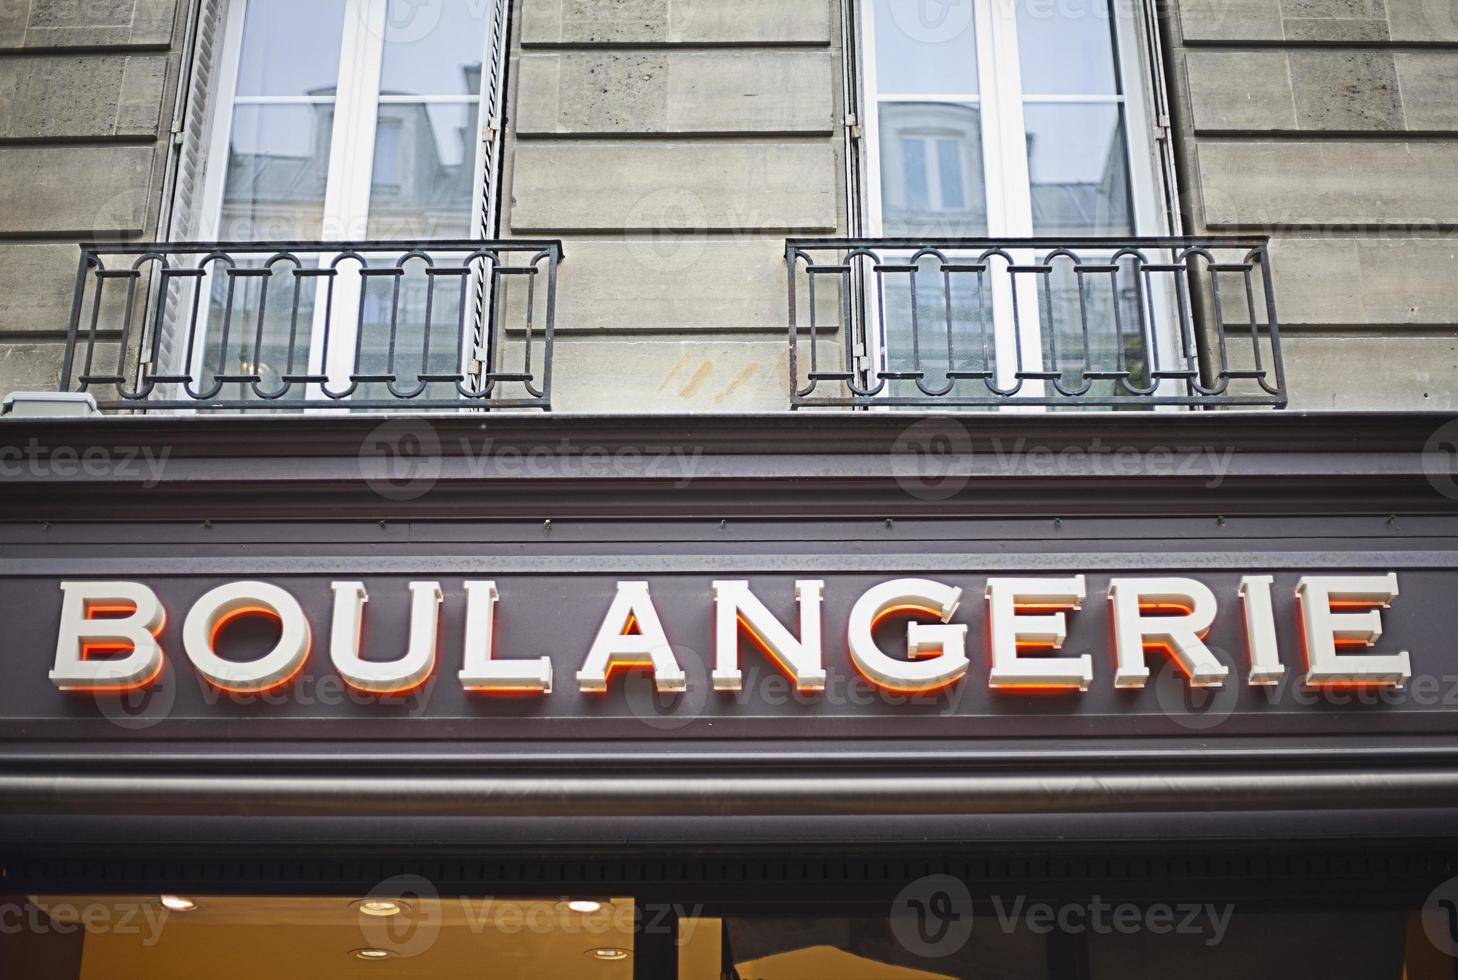 Boulangerie sign on French street photo